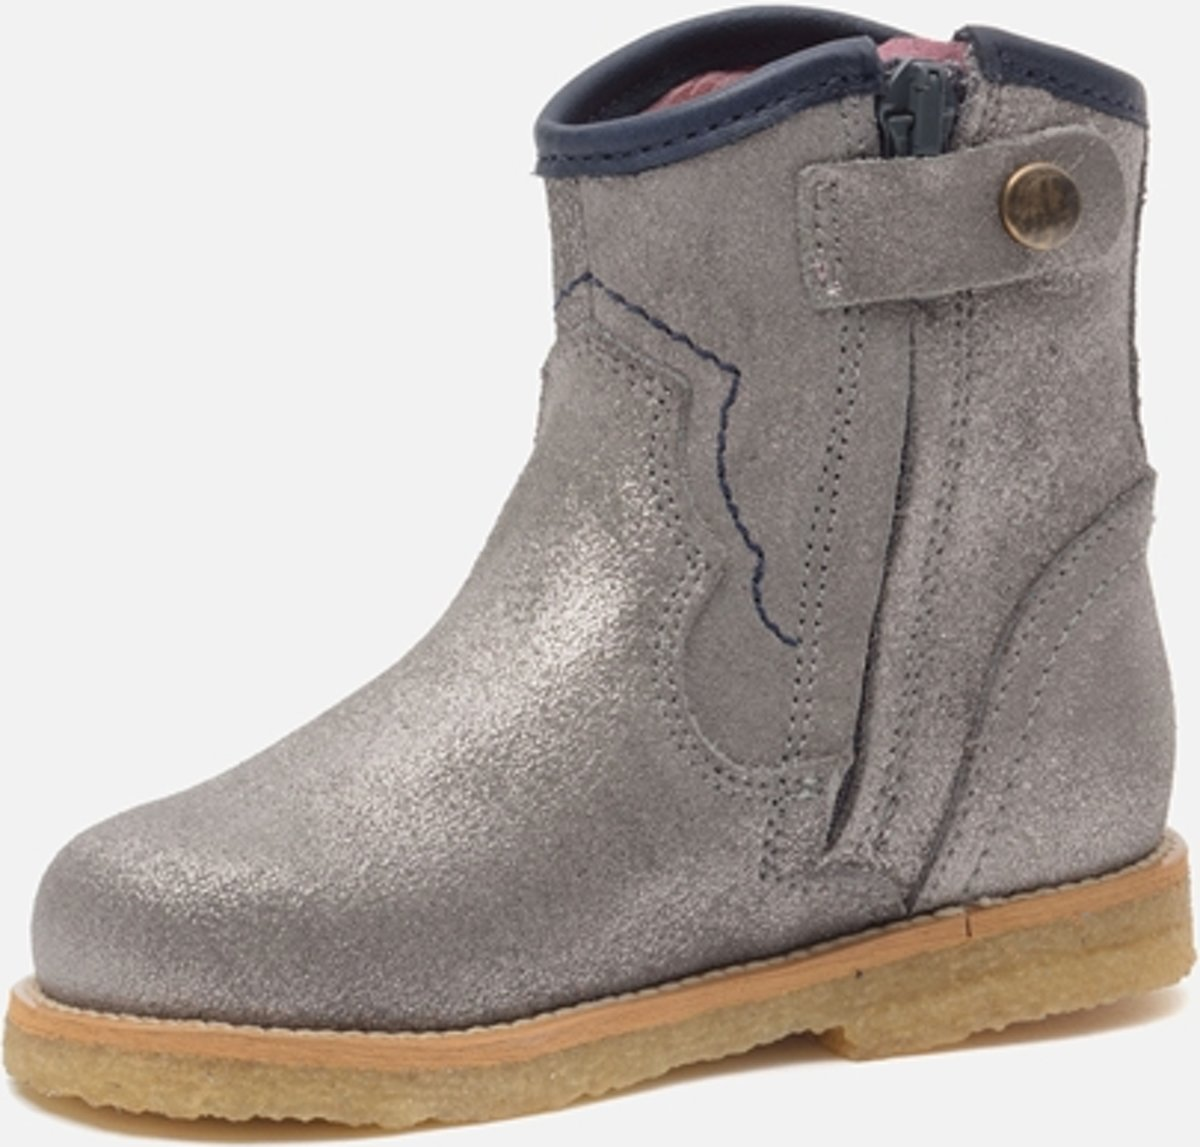 Muyters - Bottes - Taille 26 - Cuir - Blanc cb0nbzUjN